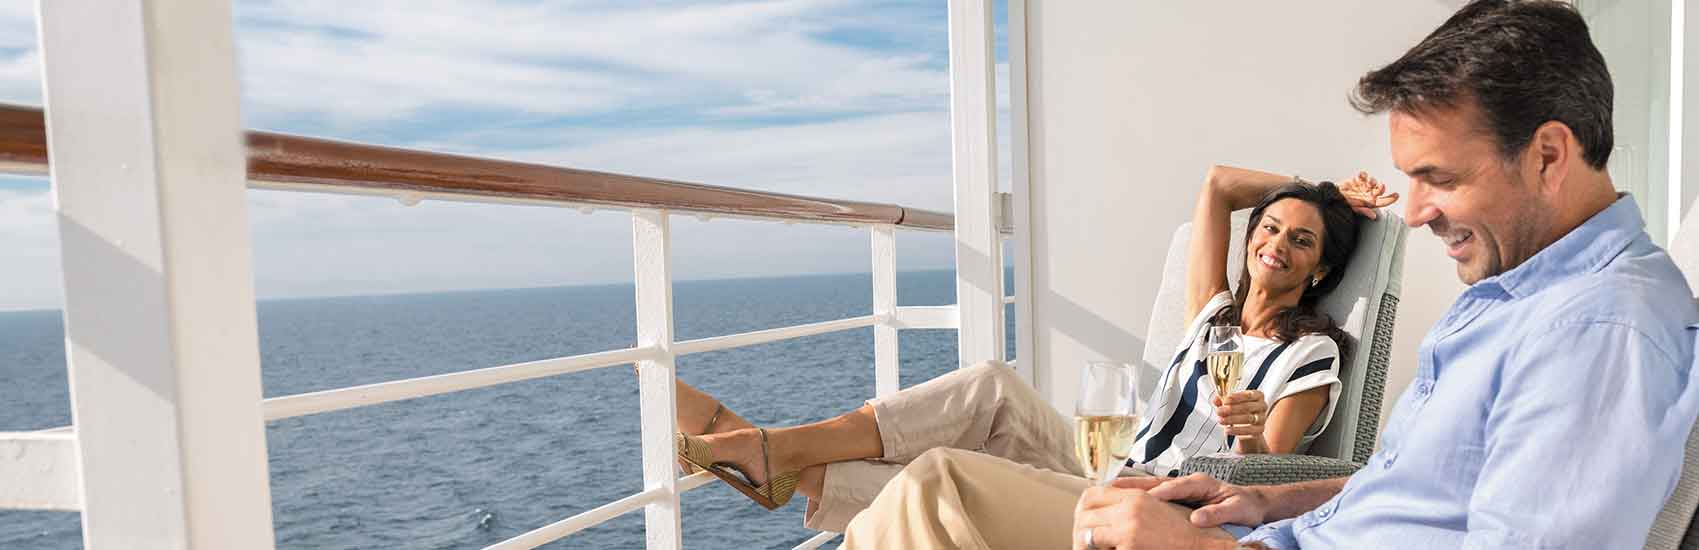 Upgrade your Horizon with Regent Seven Seas 0